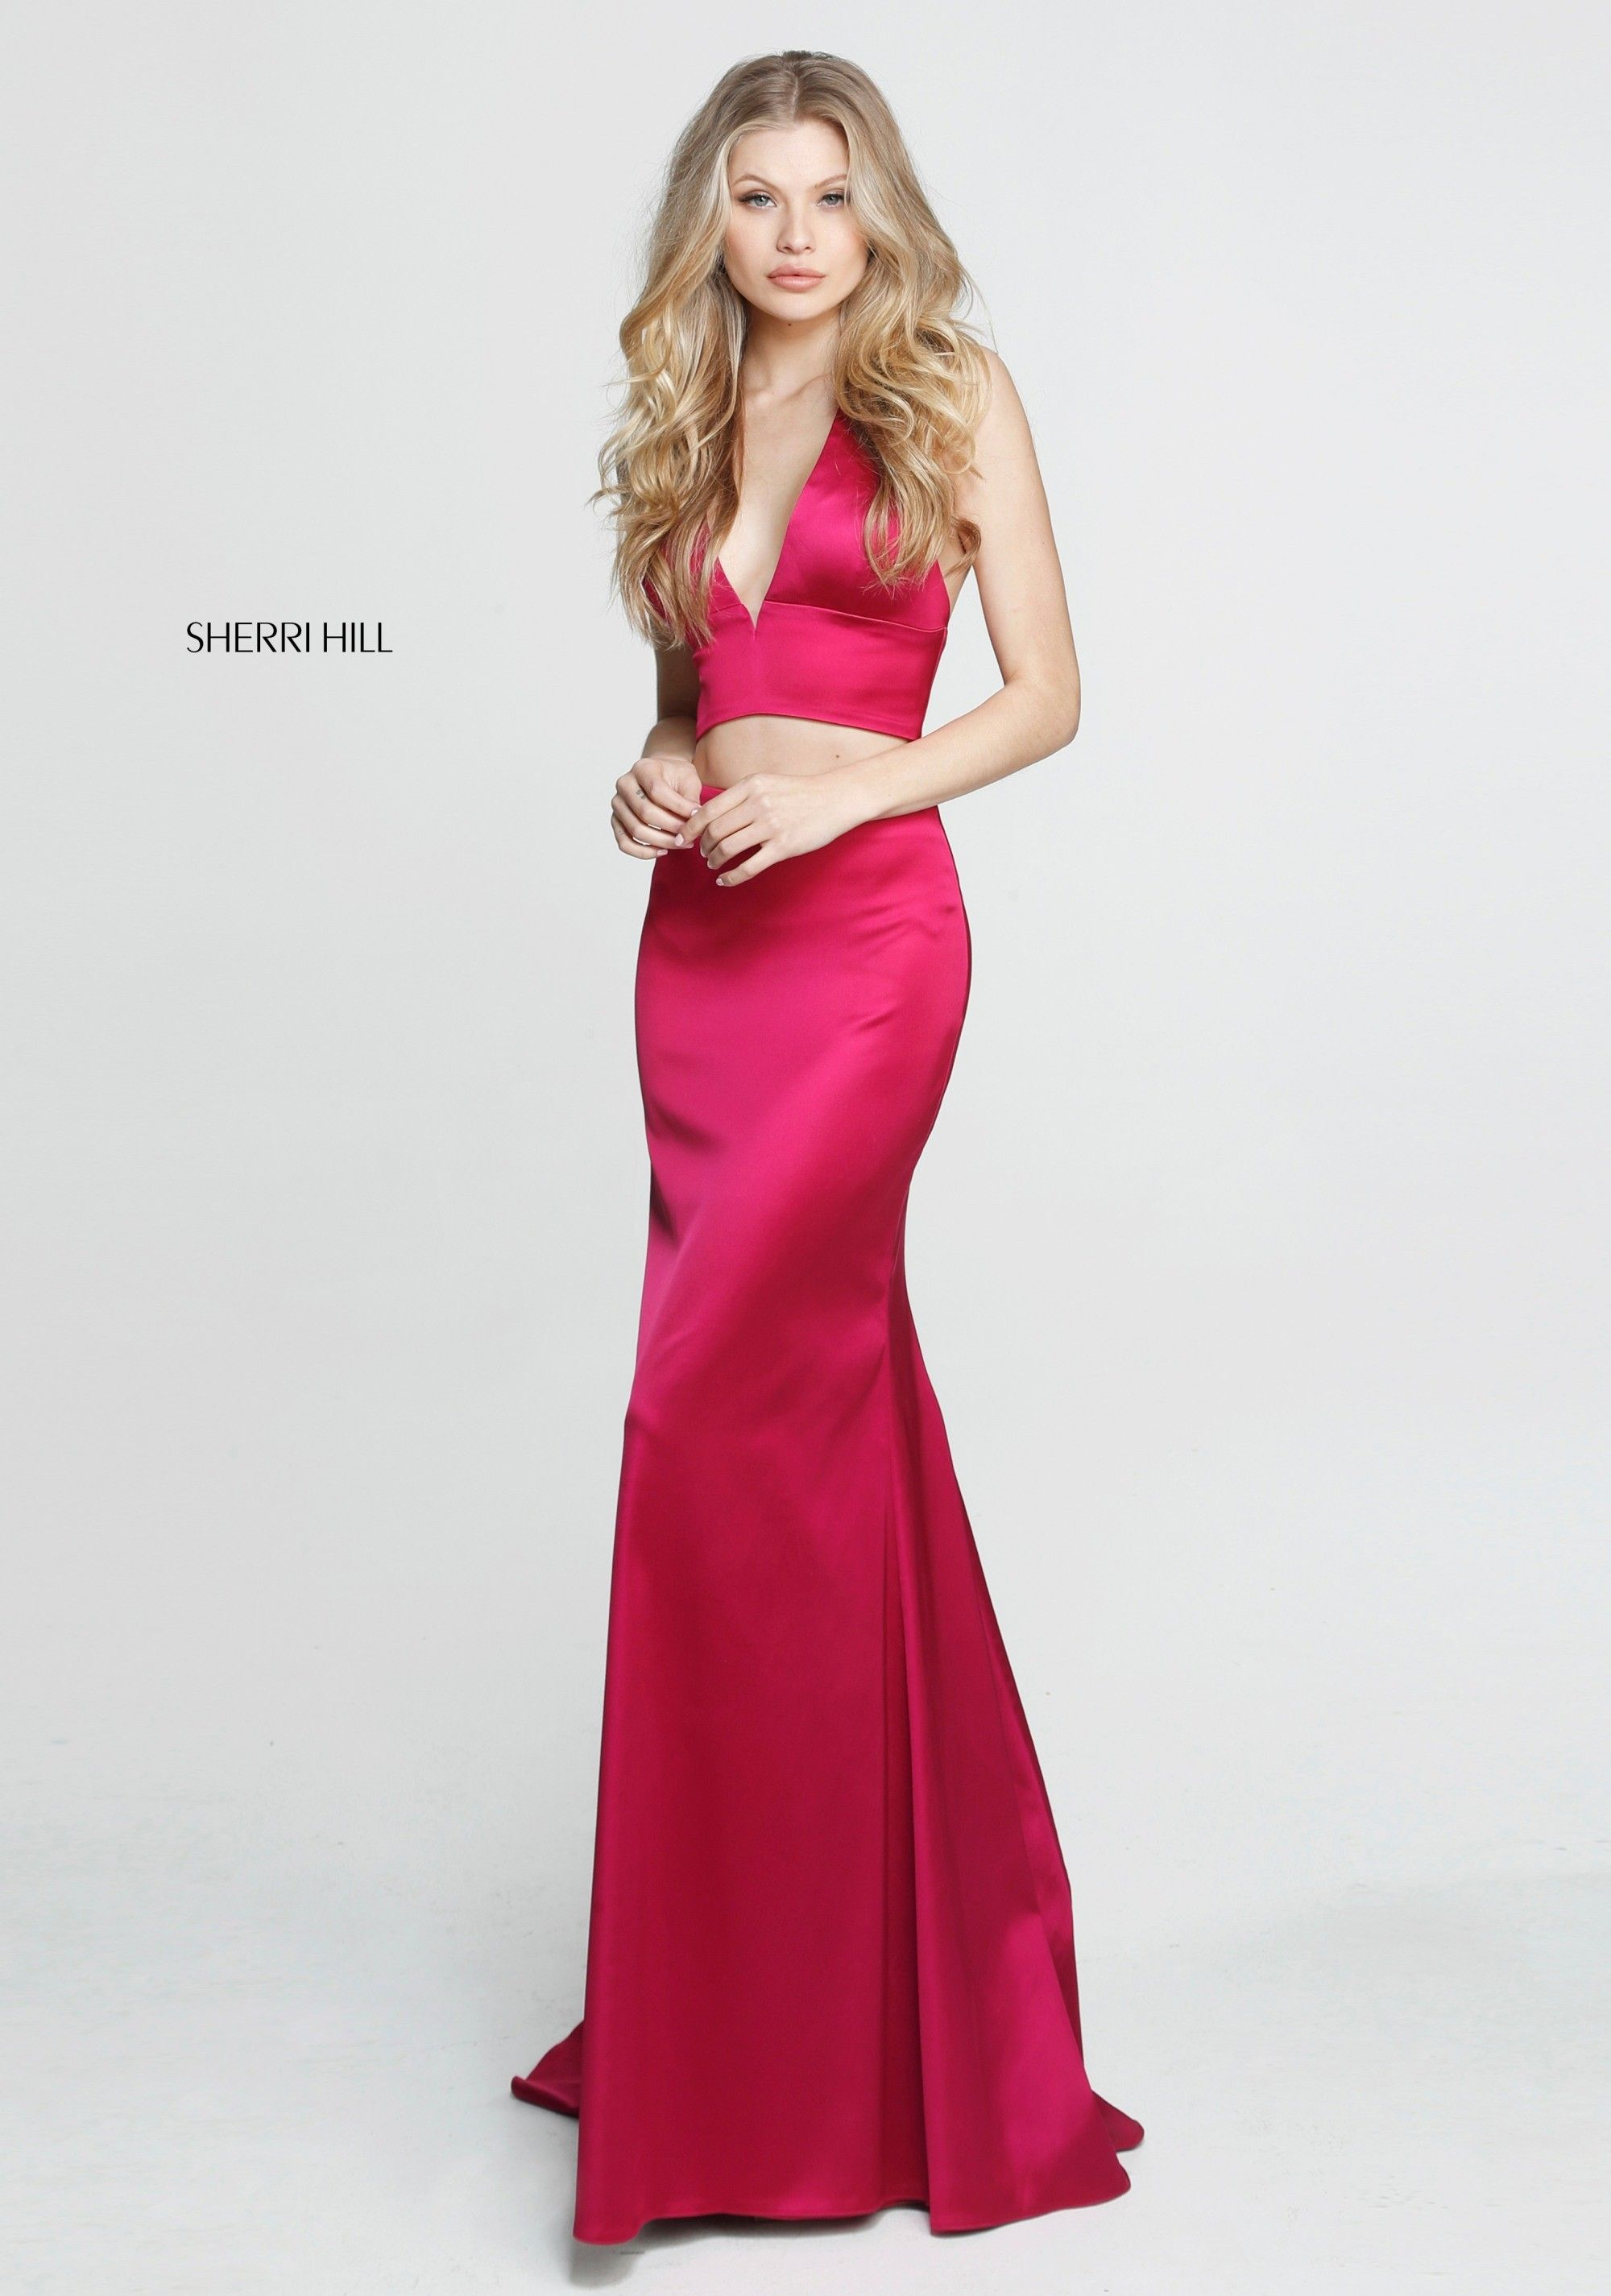 Spring 2017 collection featuring Sherri Hill 51250 is available now for pre-order. Call 866-779-7667 for more details. Sexy V-Neck two piece satin evening gown.